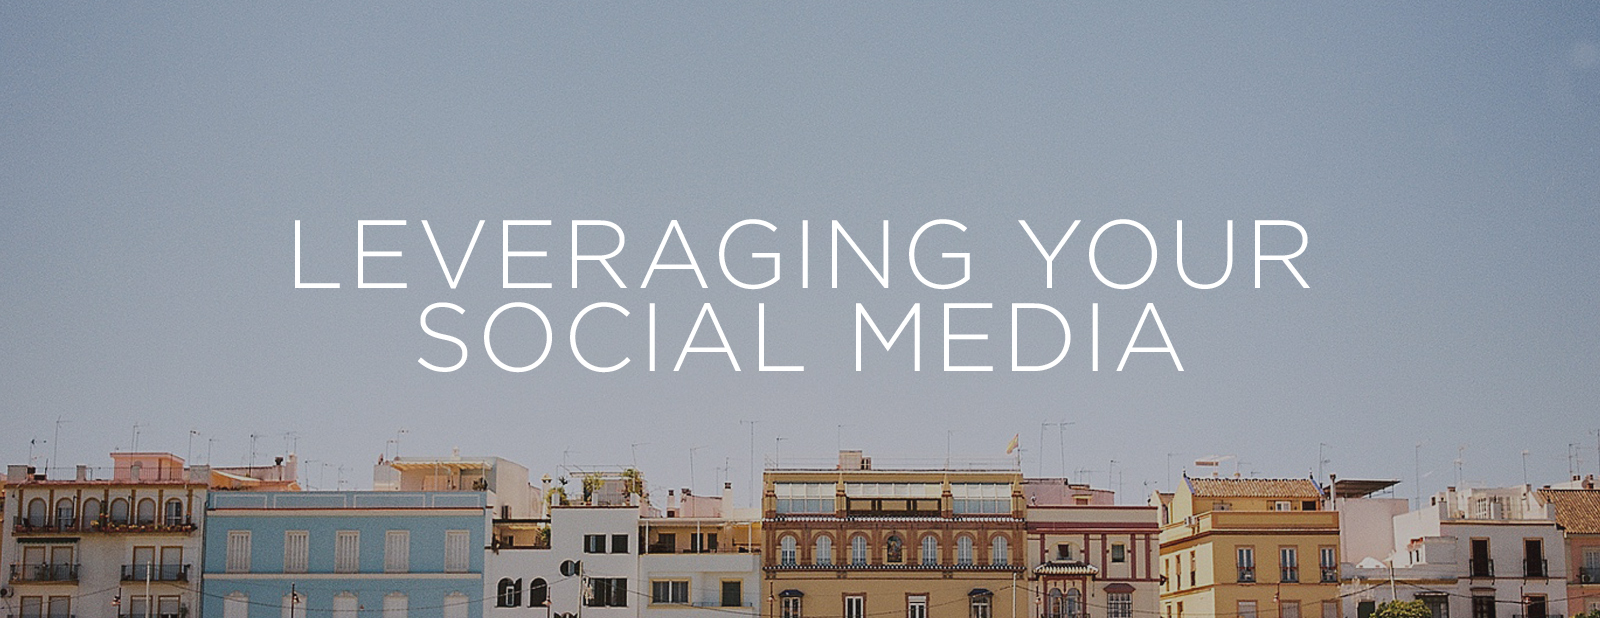 Leveraging Your Social Media | via the Rising Tide Society